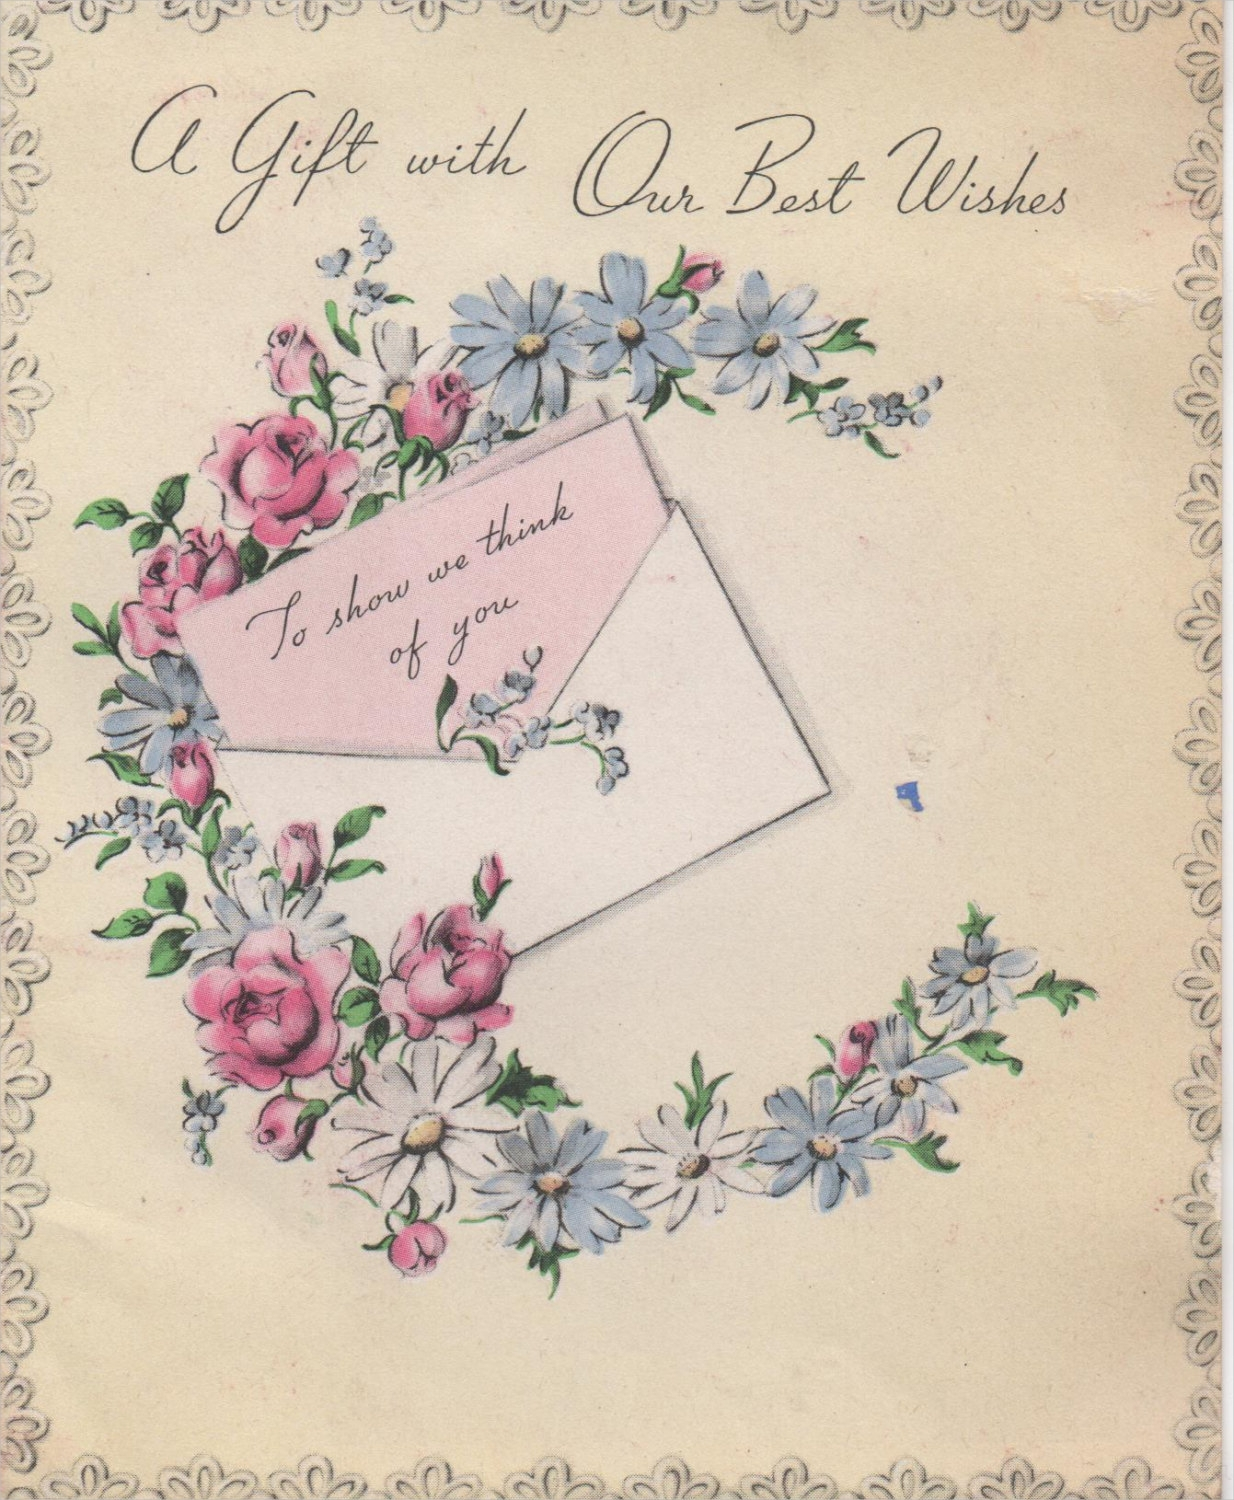 1940s greeting card